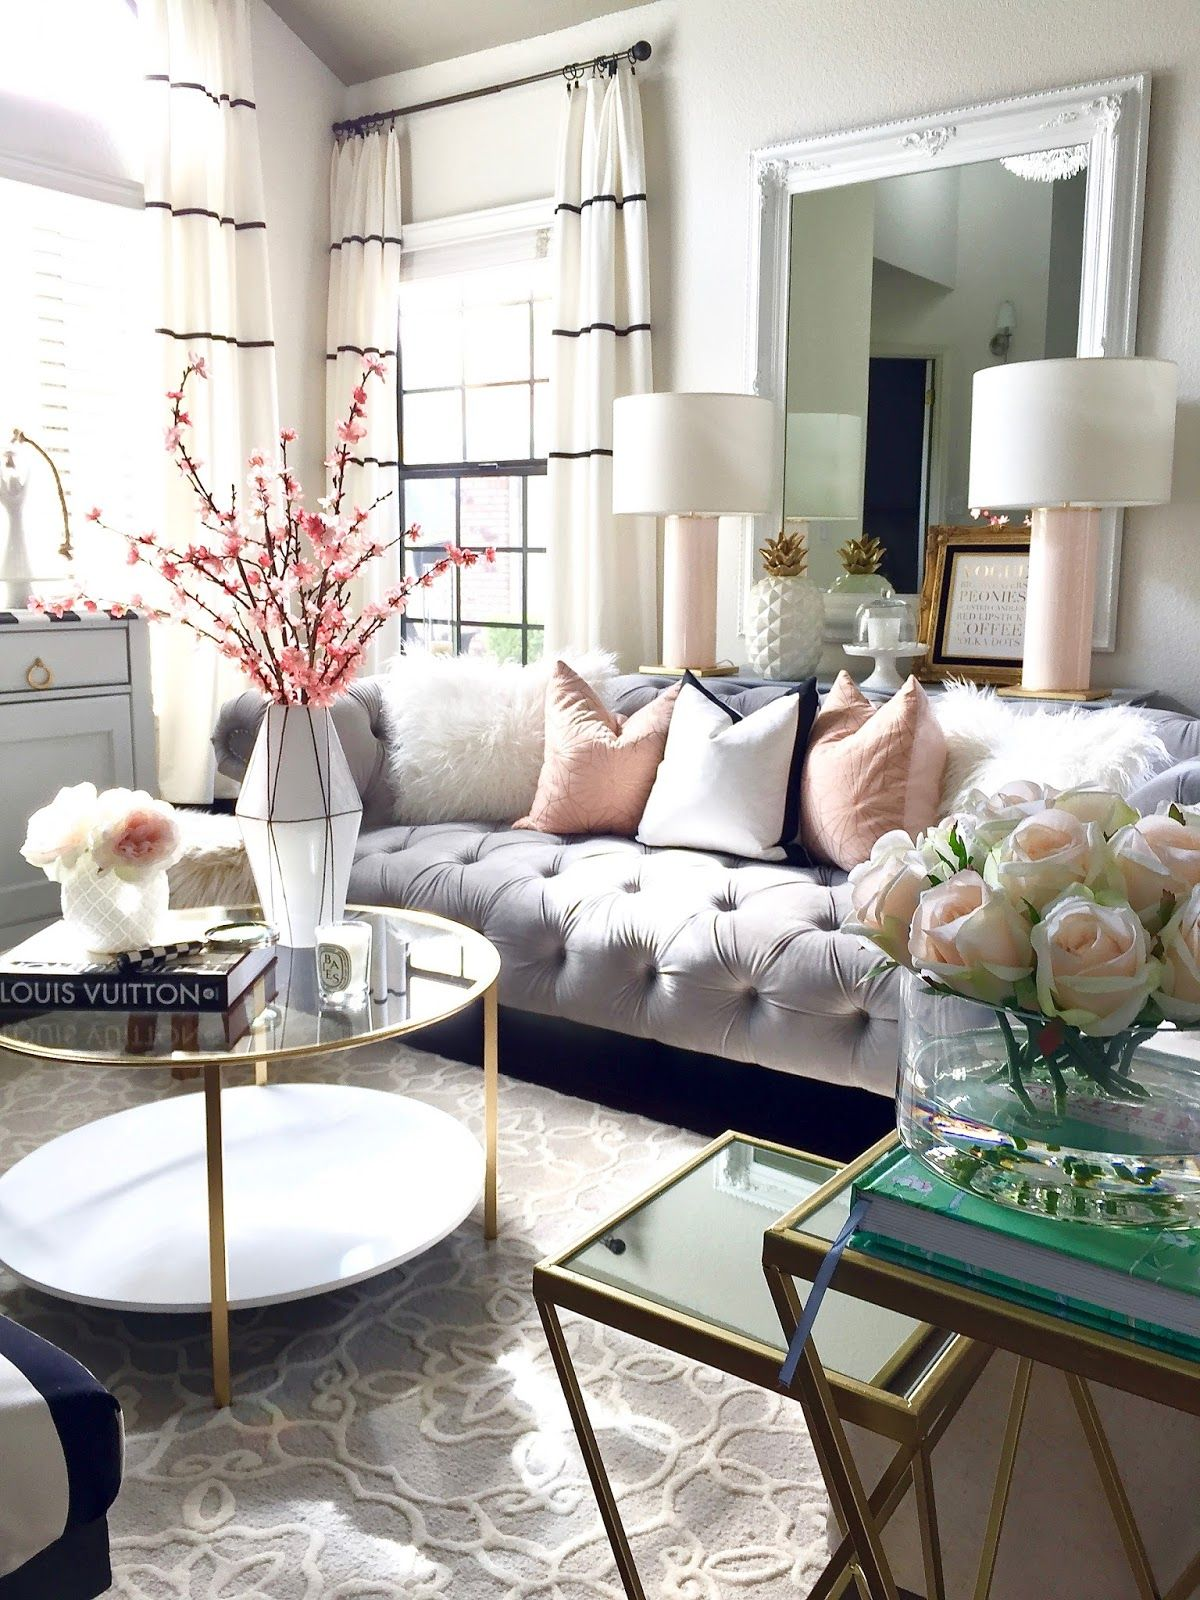 Home and Fabulous was founded & created in 2014 as a creative ...